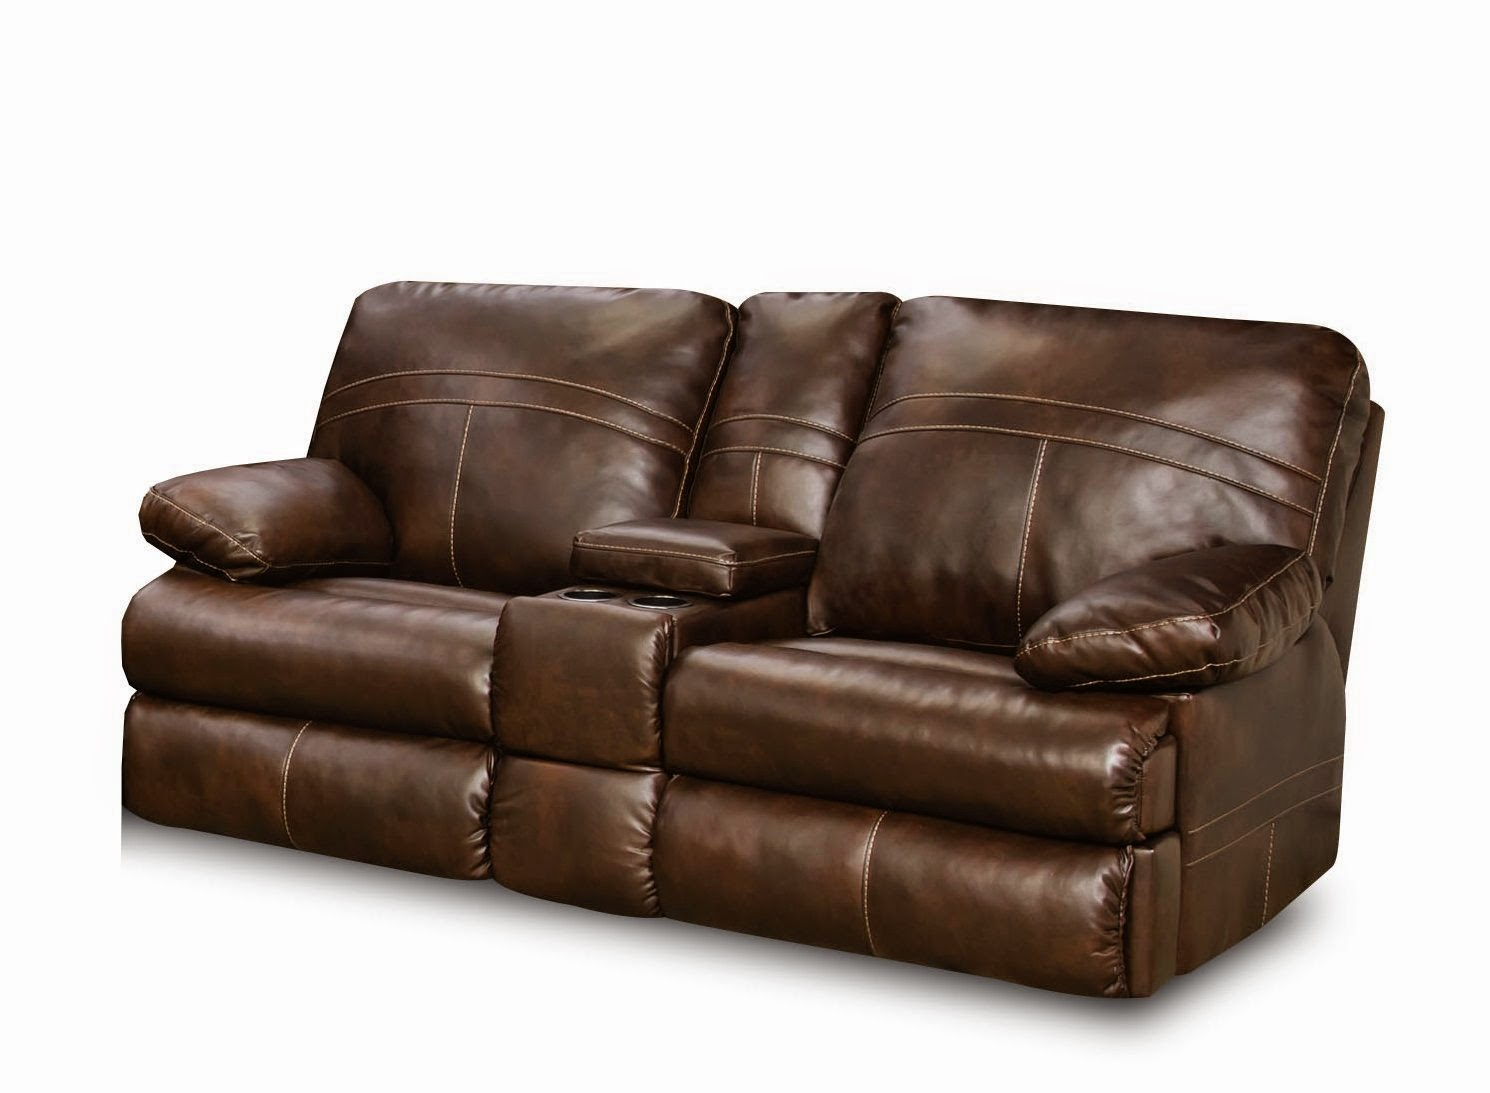 Leather Sofa Complaints Rico Cloud 9 Bed The Best Reclining Reviews Simmons